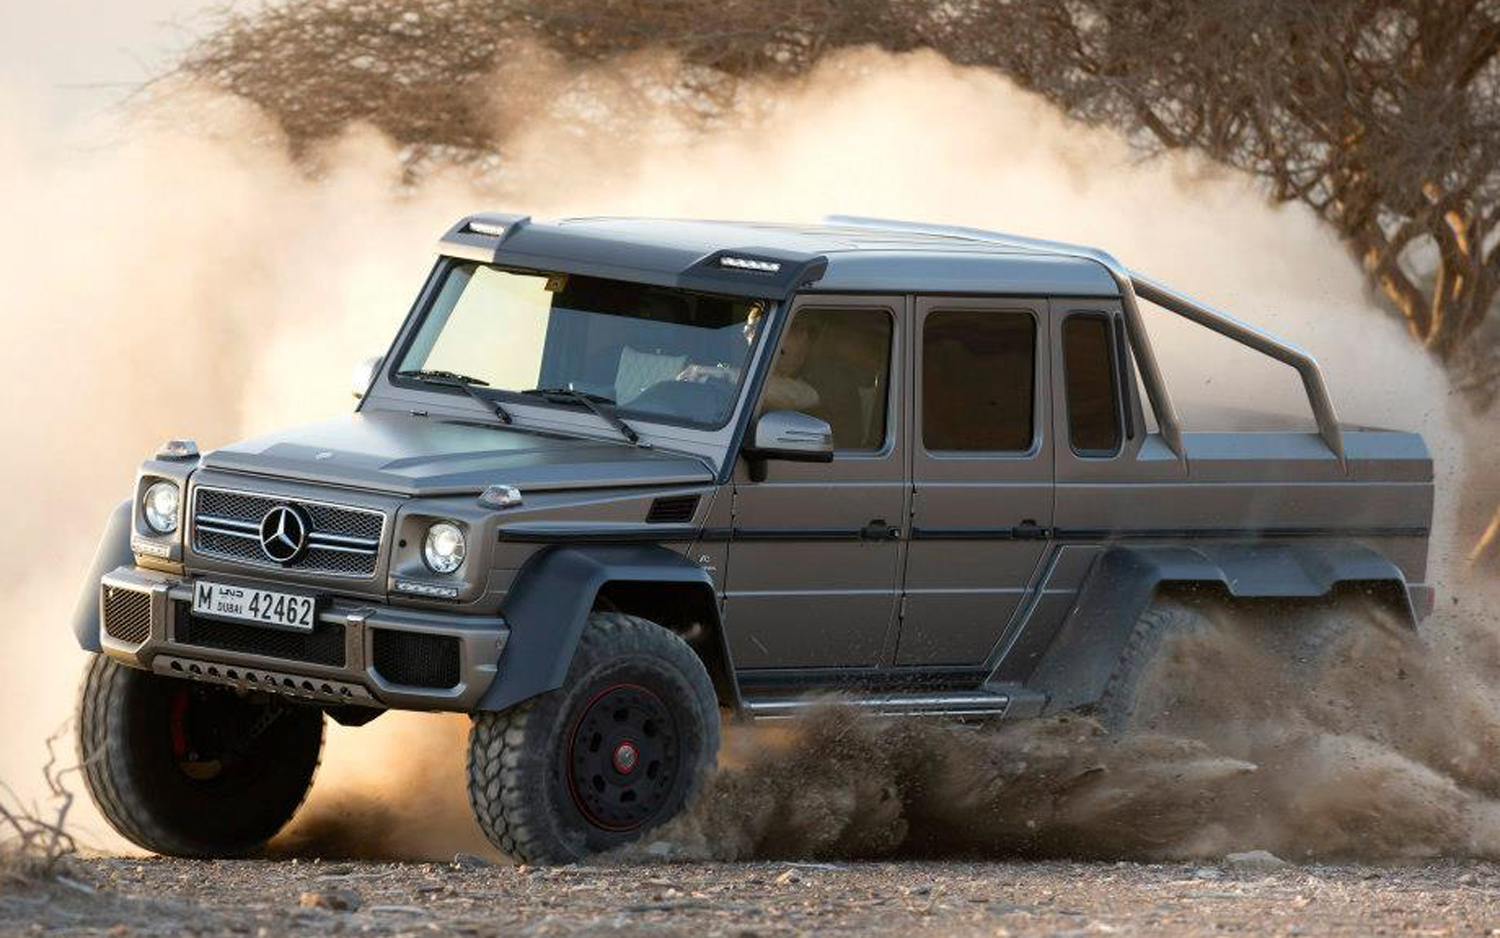 Mercedes benz g63 amg 6x6 2013 netcarshow for 2013 mercedes benz g63 amg